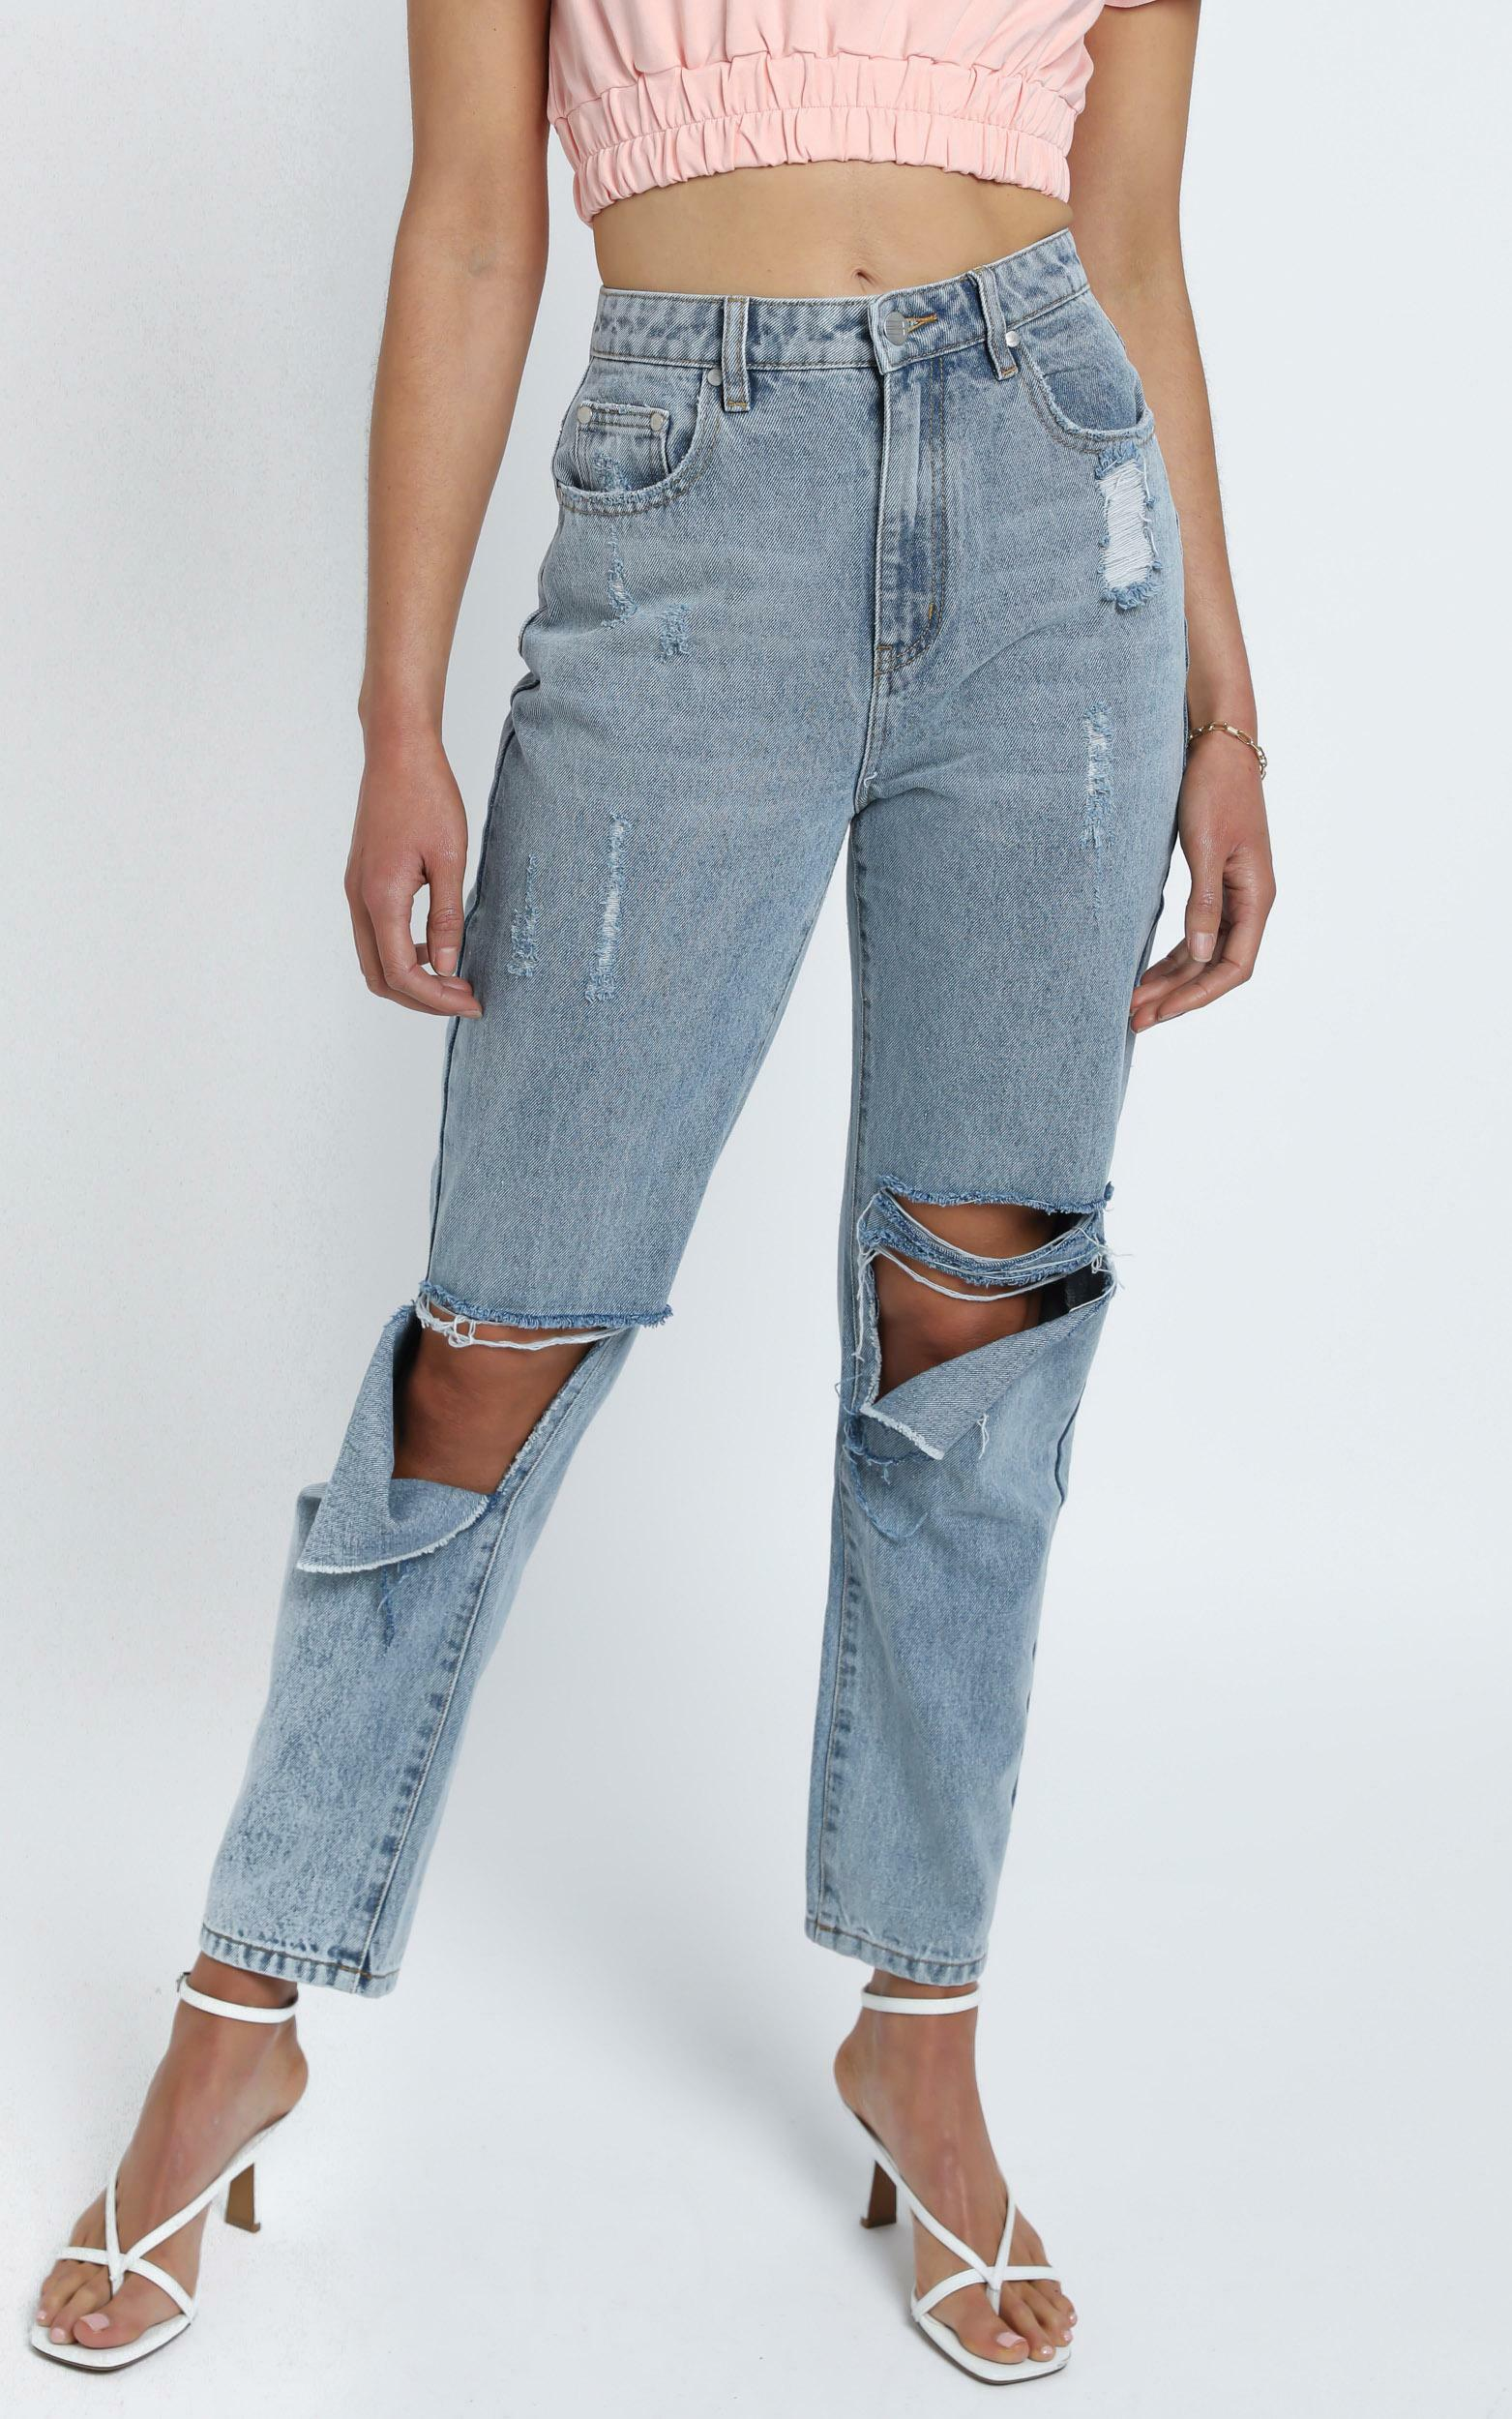 Twiin - Royals Tapered Jean in Light Denim Wash - 4 (XXS), Blue, hi-res image number null